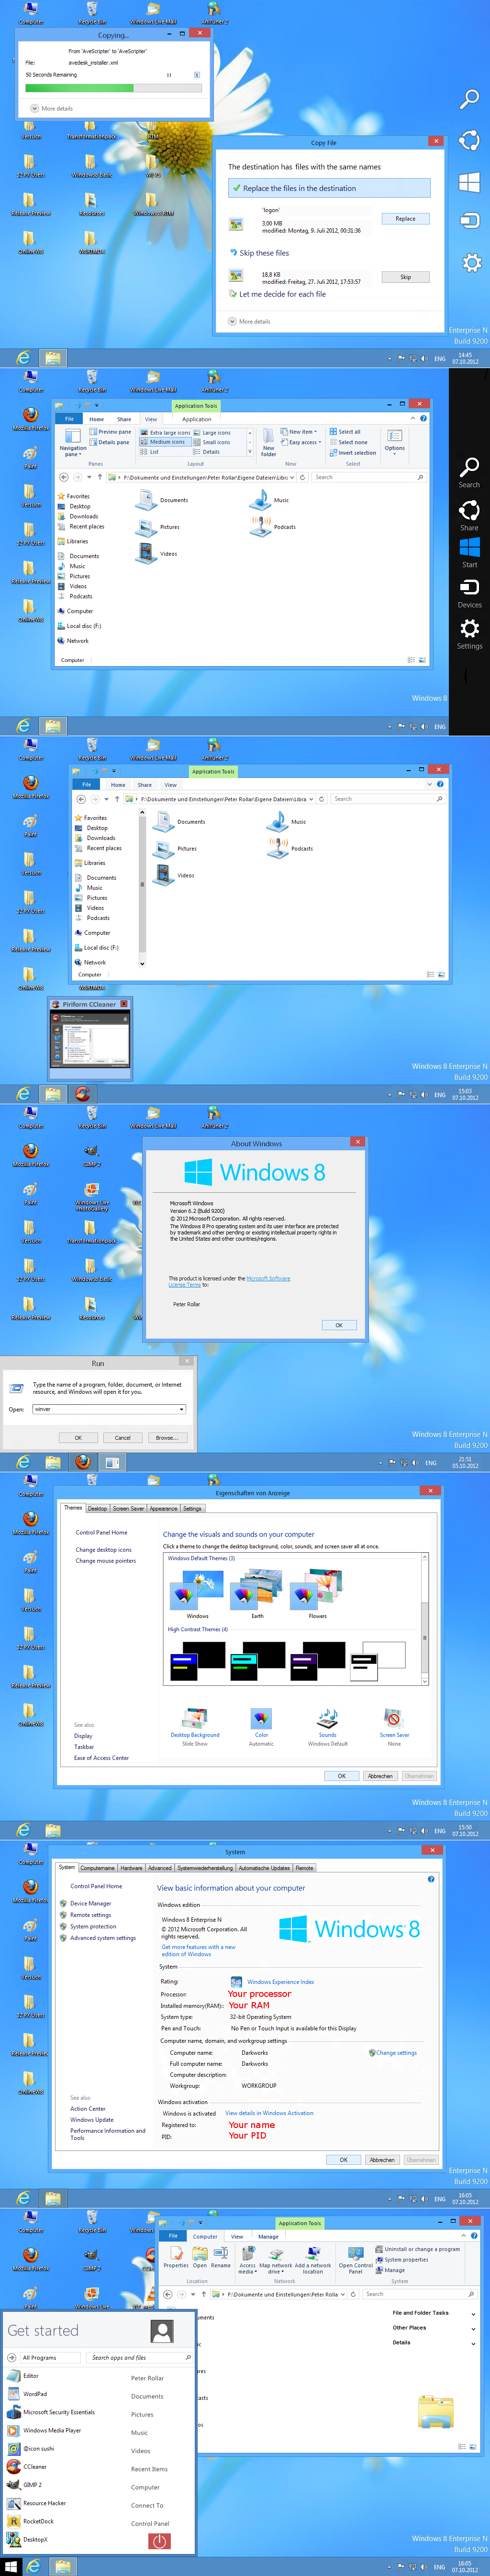 Windows 8 Rtm Build 9200 By Peterrollar On Deviantart